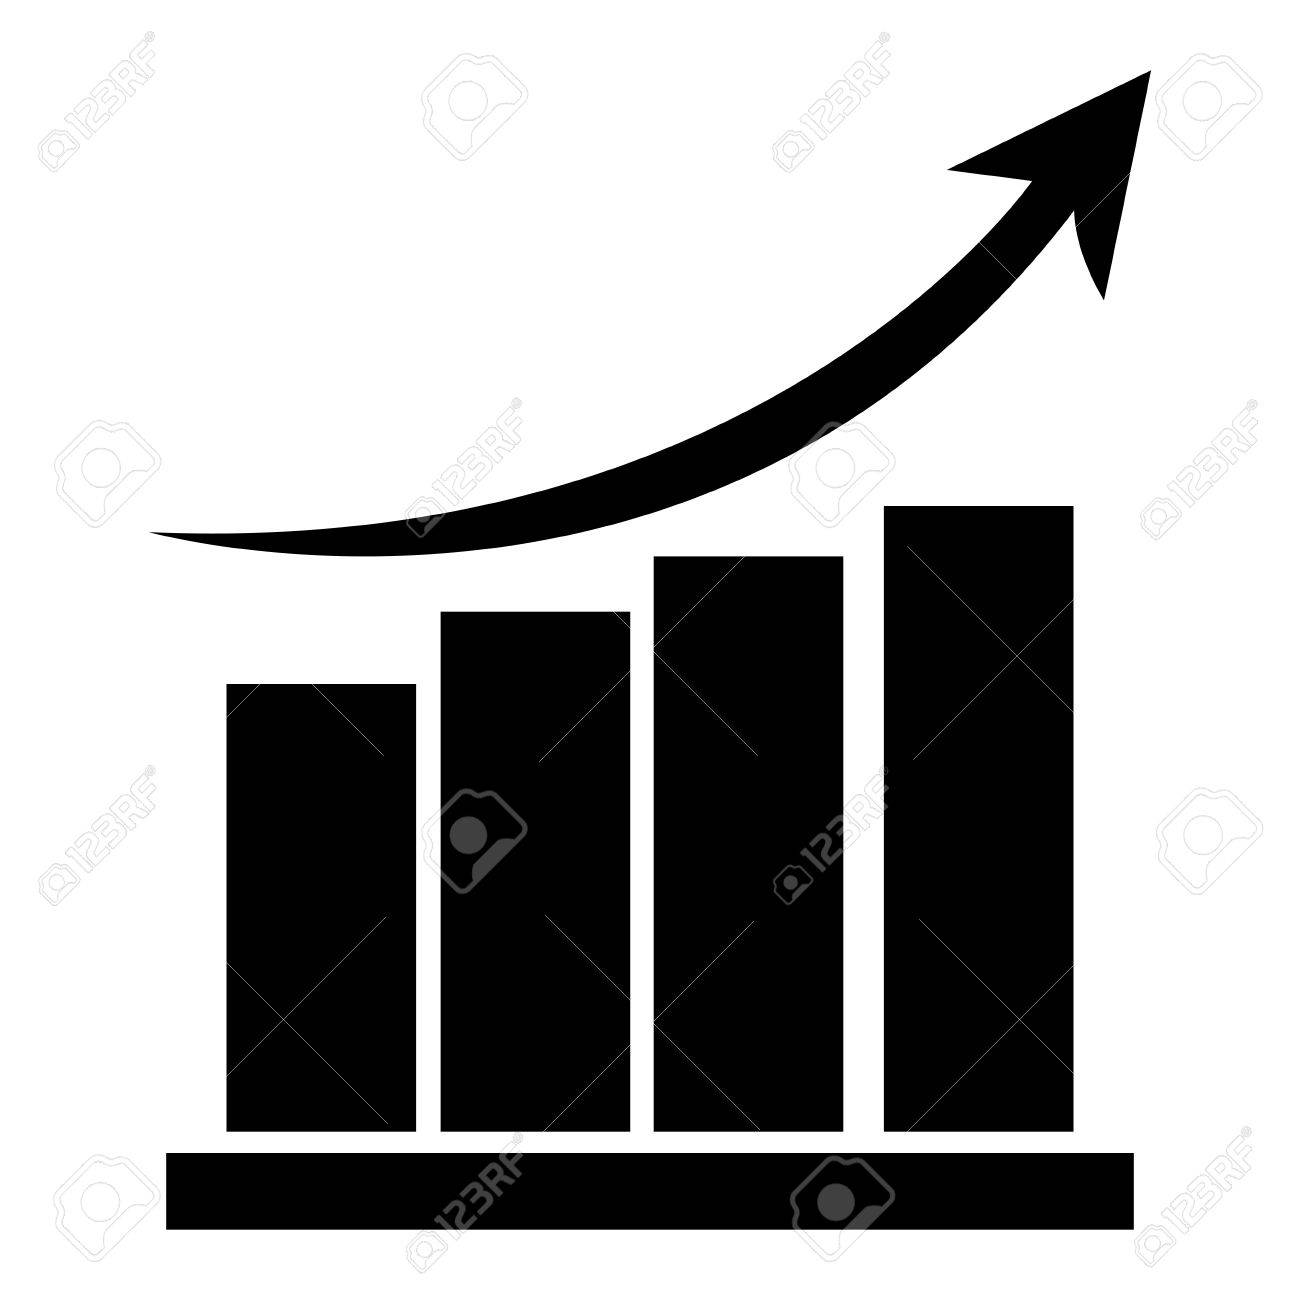 black bar graph with arrow on top pointing upwards vector